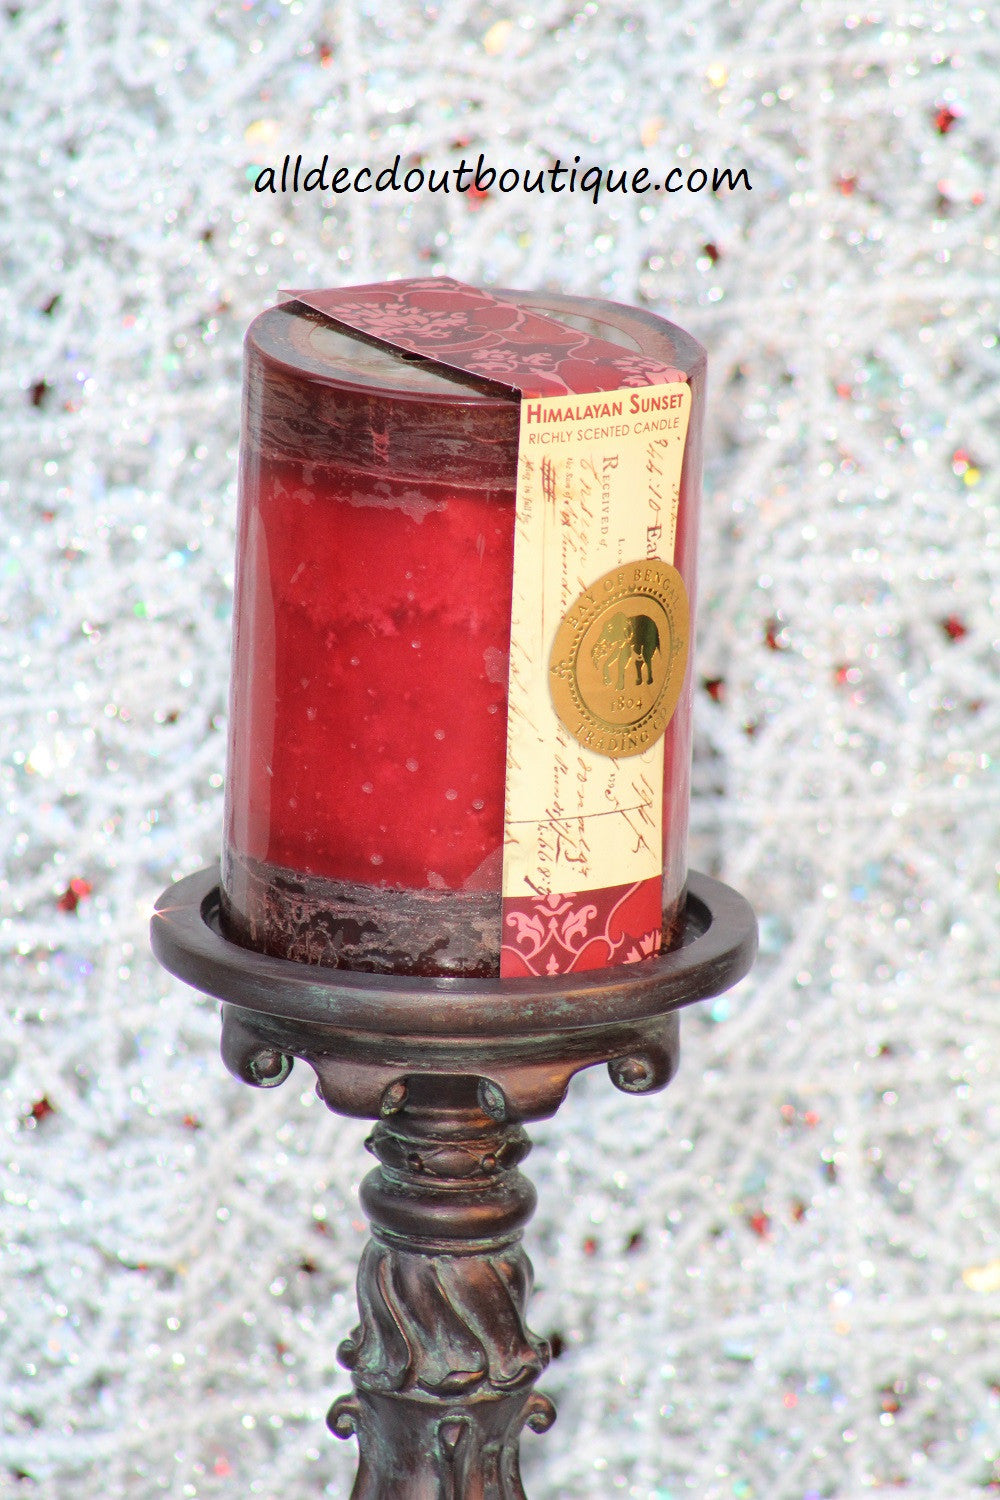 Pillar Candle 3 x 4 Himalayan Sunset